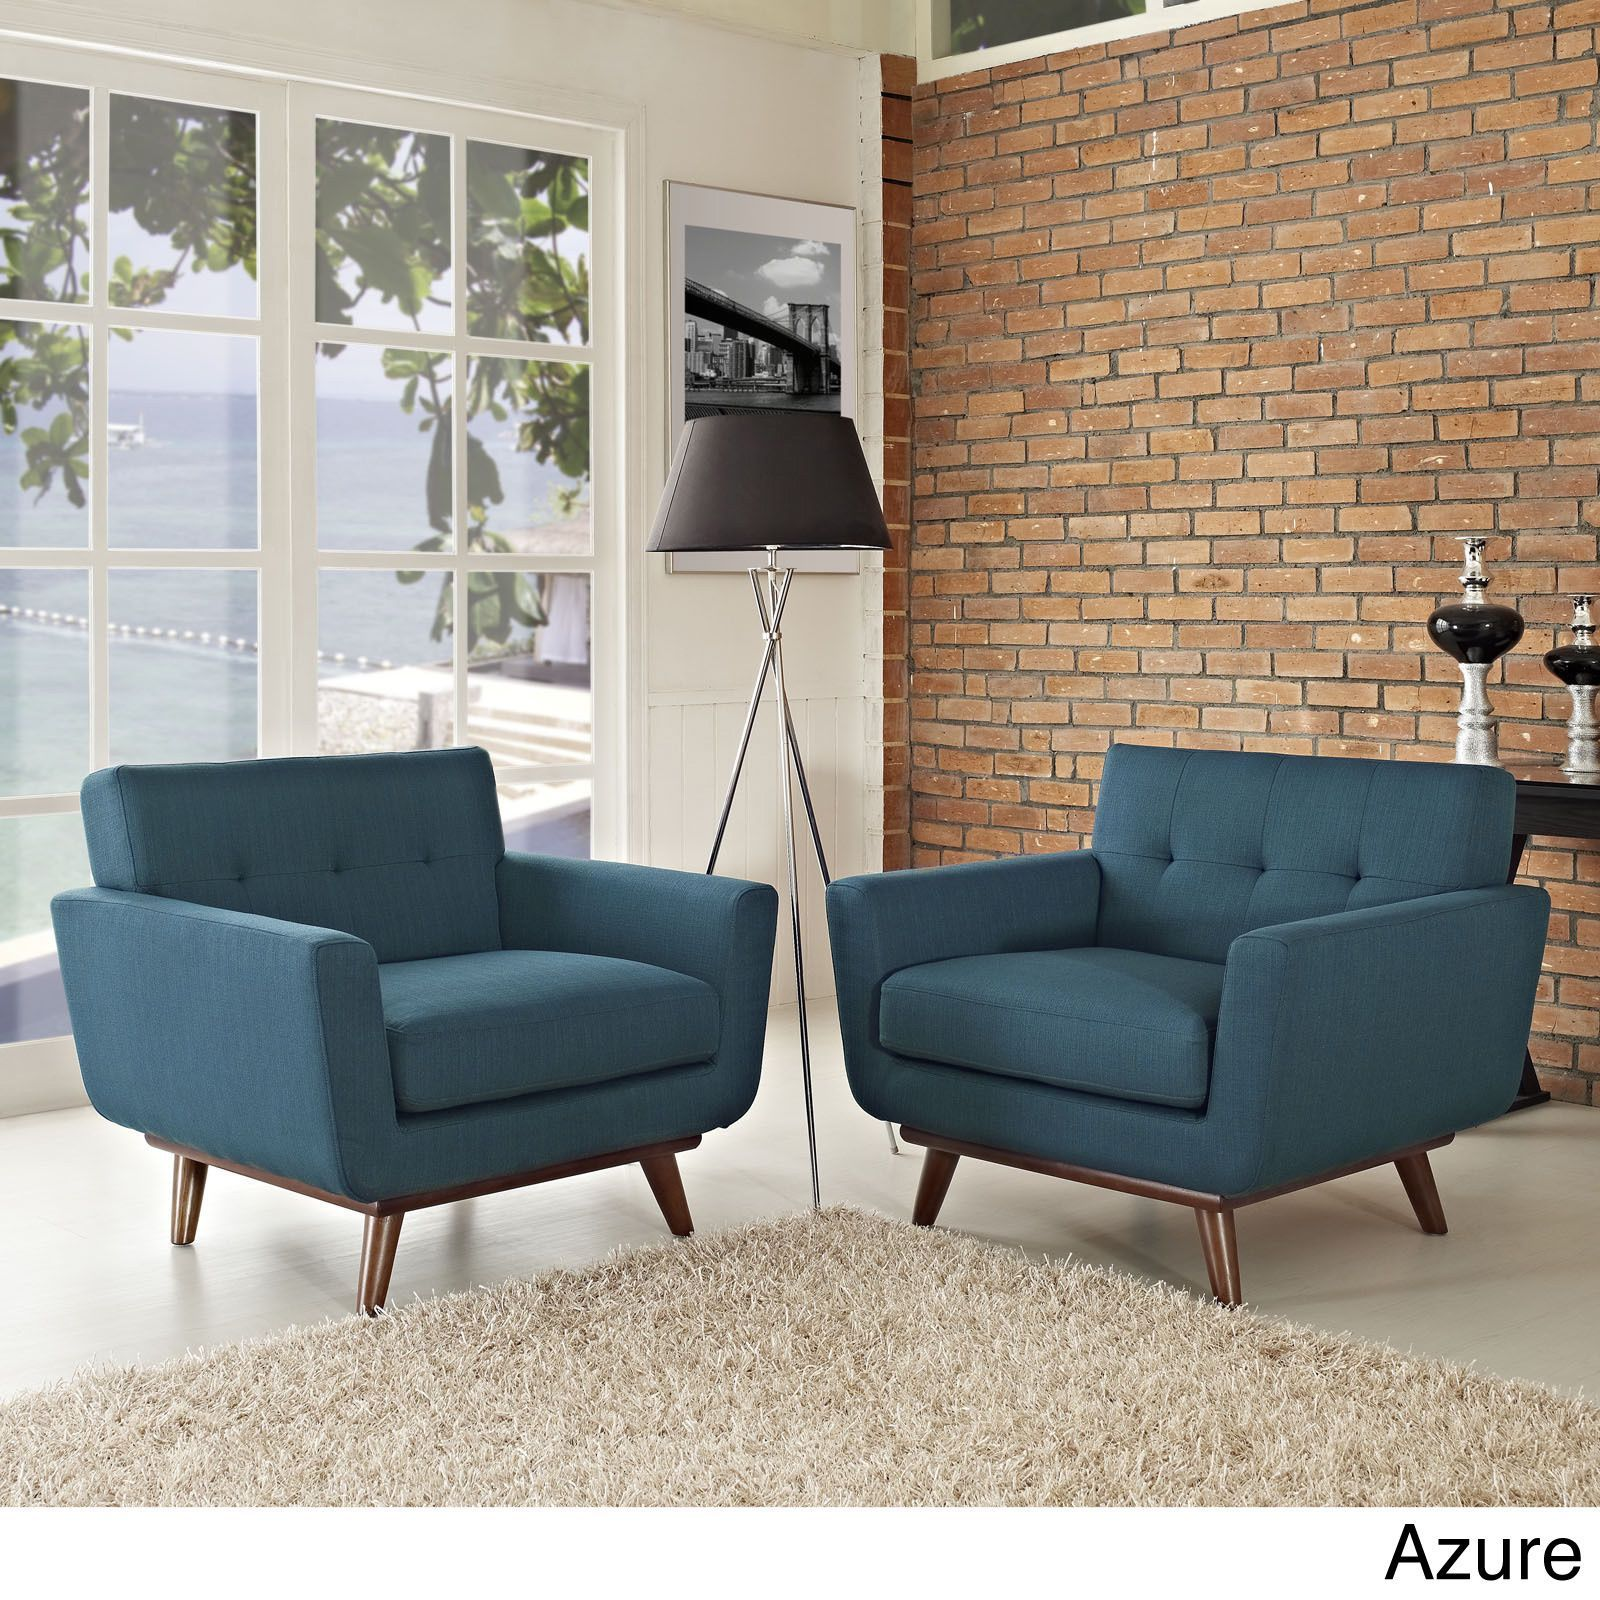 Best Modway Engage Mid Century Modern Sloping Armchairs Set Of 400 x 300